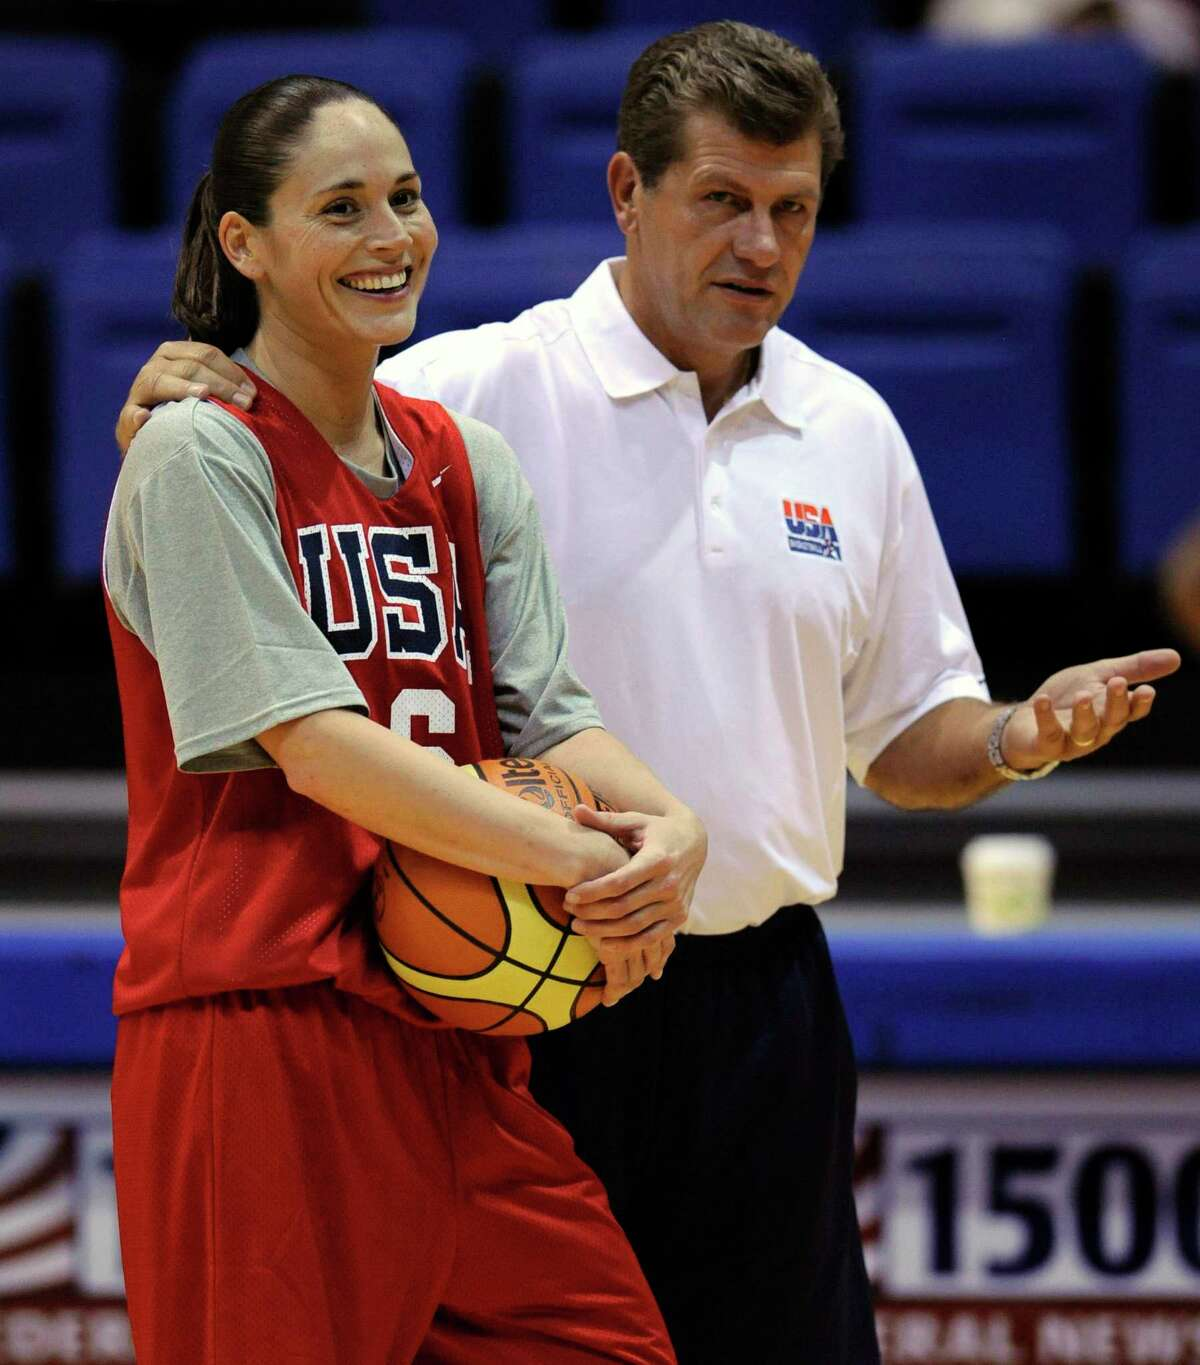 Geno Auriemma, head coach of the 2009 USA women's basketball national team, stands with Sue Bird during their fall training camp at American University in Washington, D.C., in September 2009.